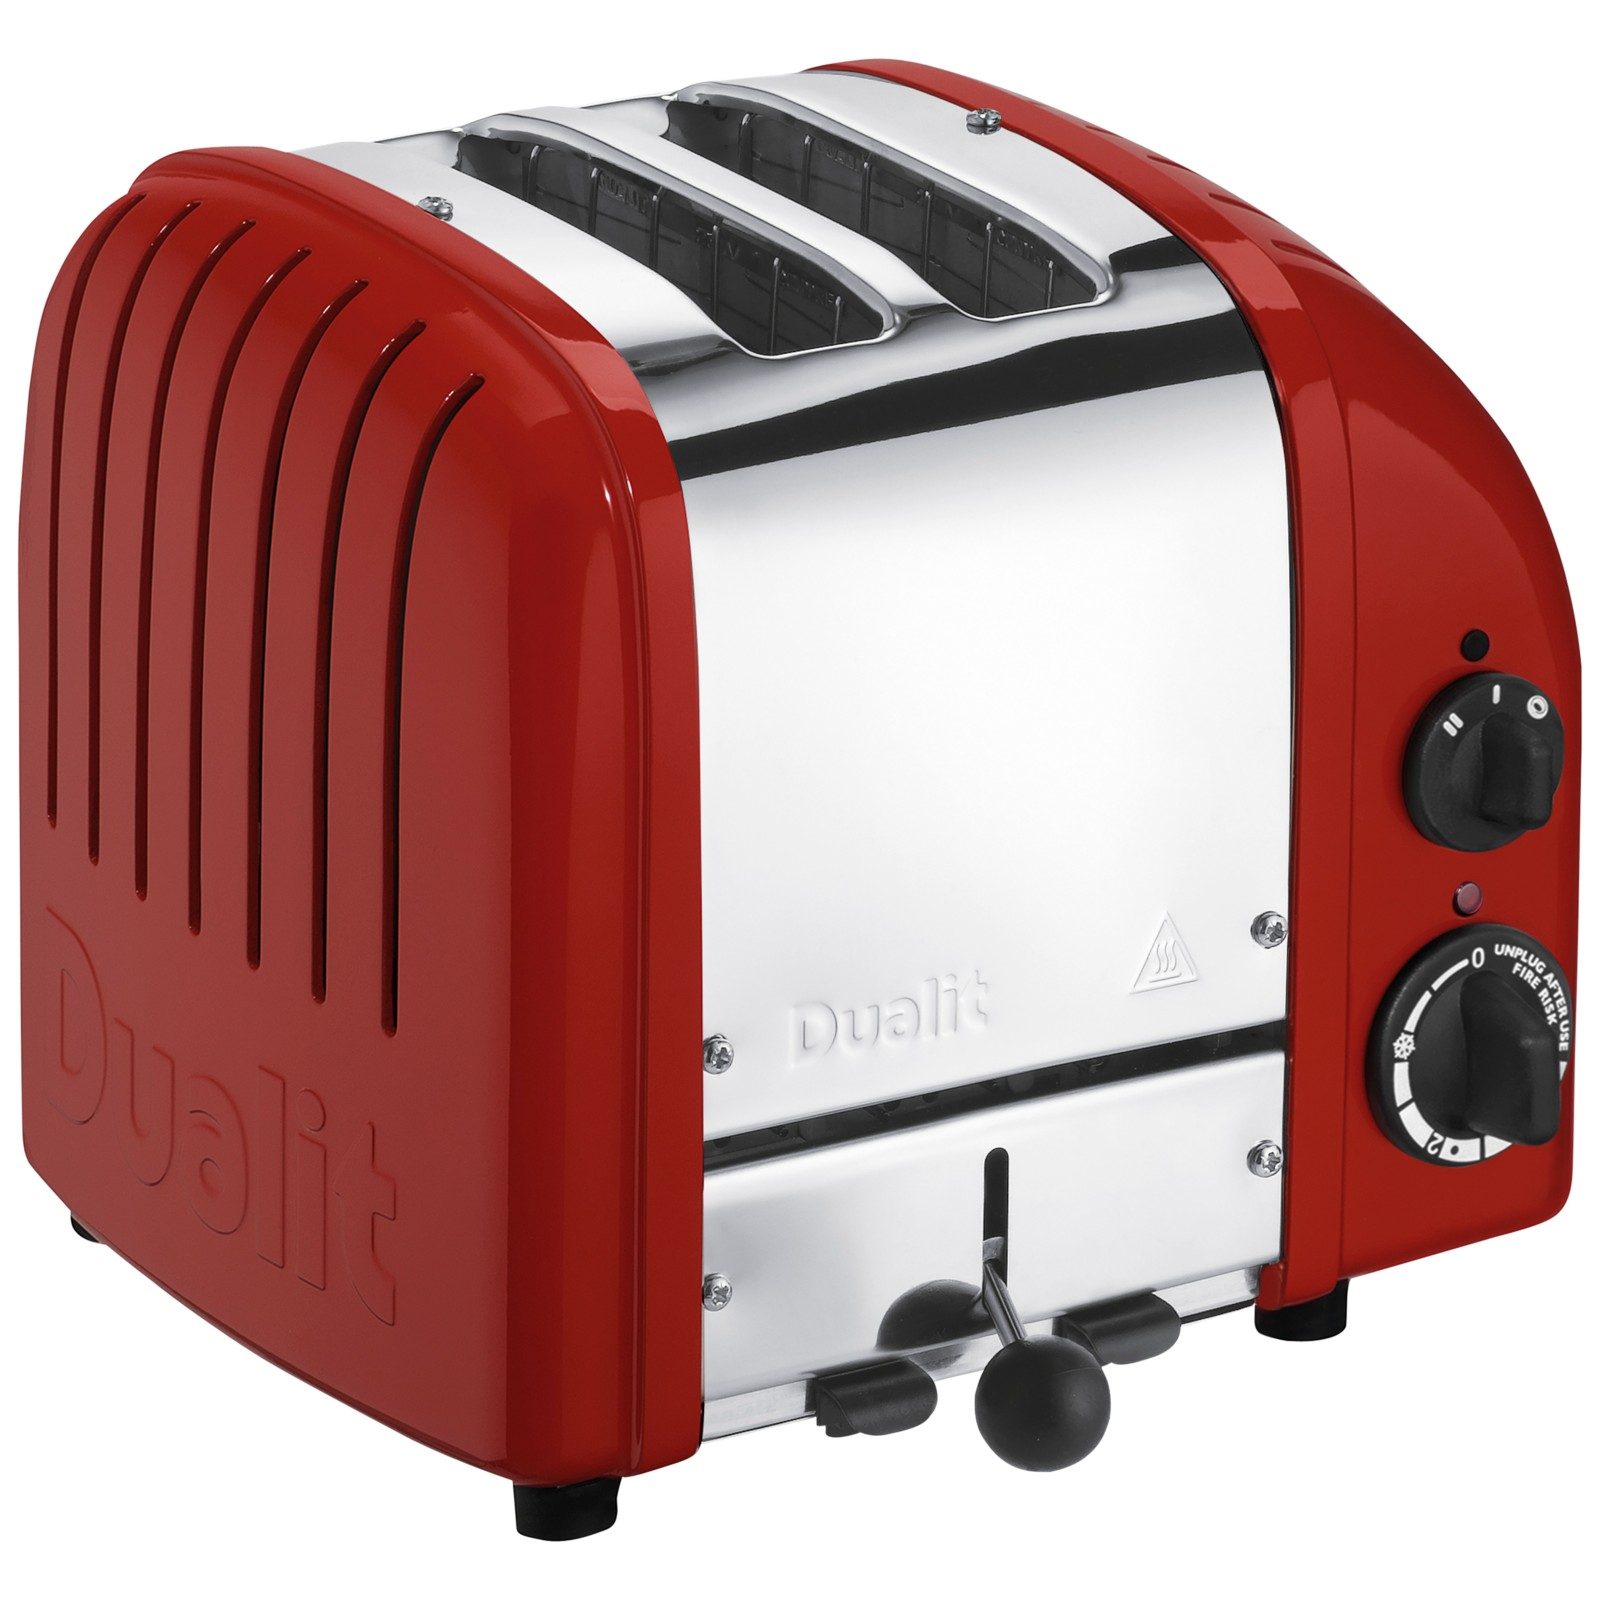 Dualit Made to Order Classic 2-Slice Toaster Stainless Steel/Brown Red Gloss